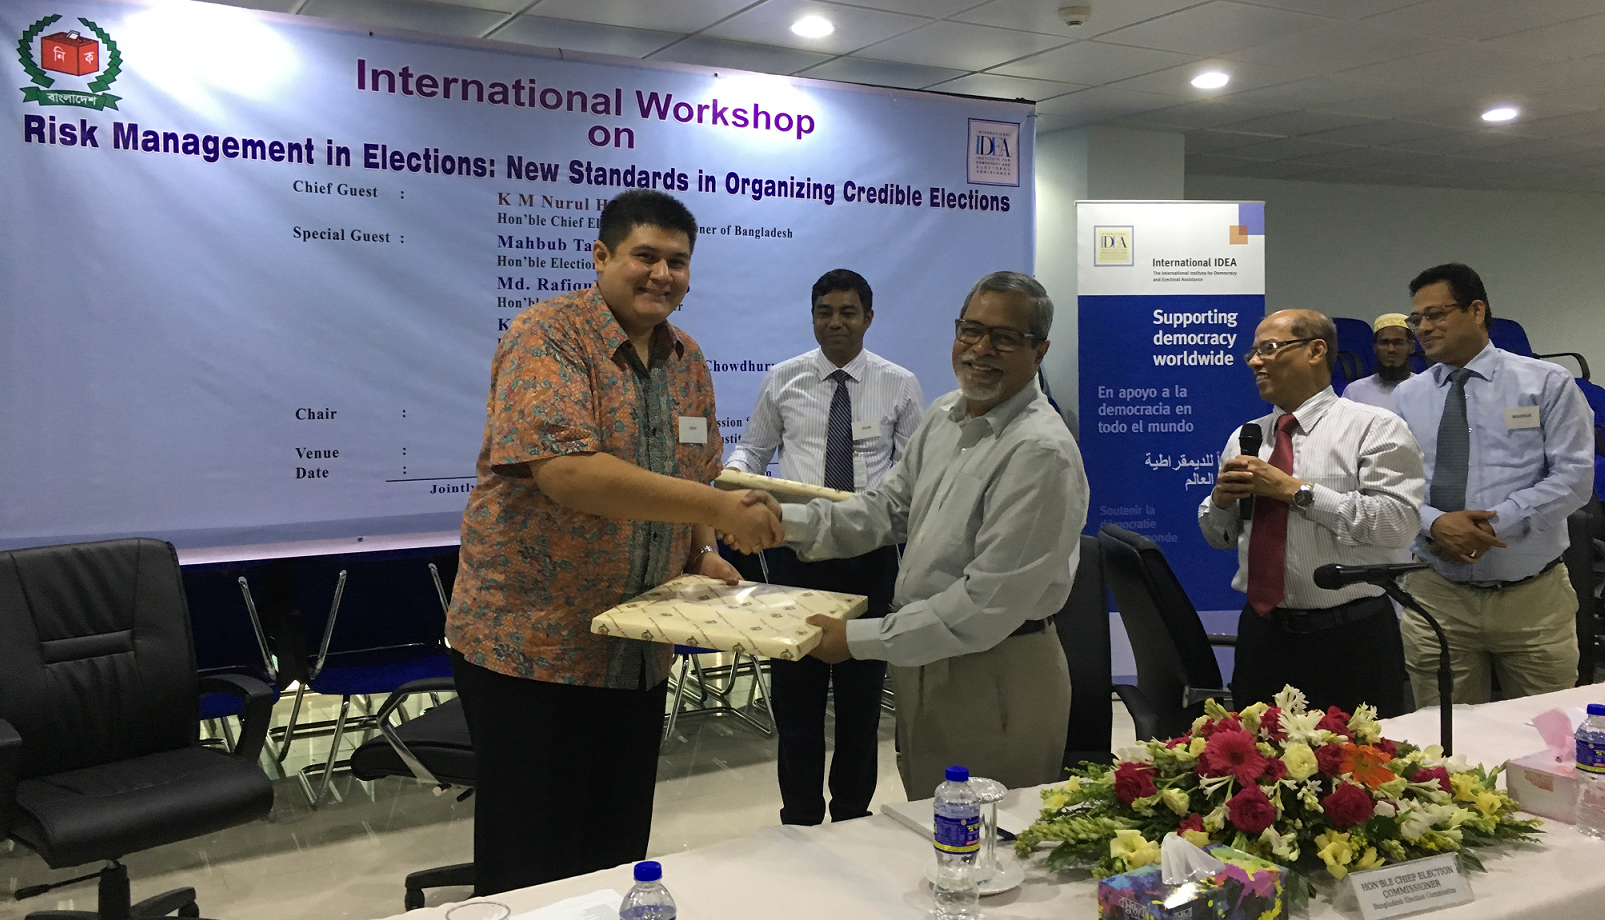 A token of appreciation from Chief Election Commissioner K. M. Nurul Huda to the International IDEA team, Dhaka, Bangladesh, 17 May 2017 [Photo: Sead Alihodzic/International IDEA]